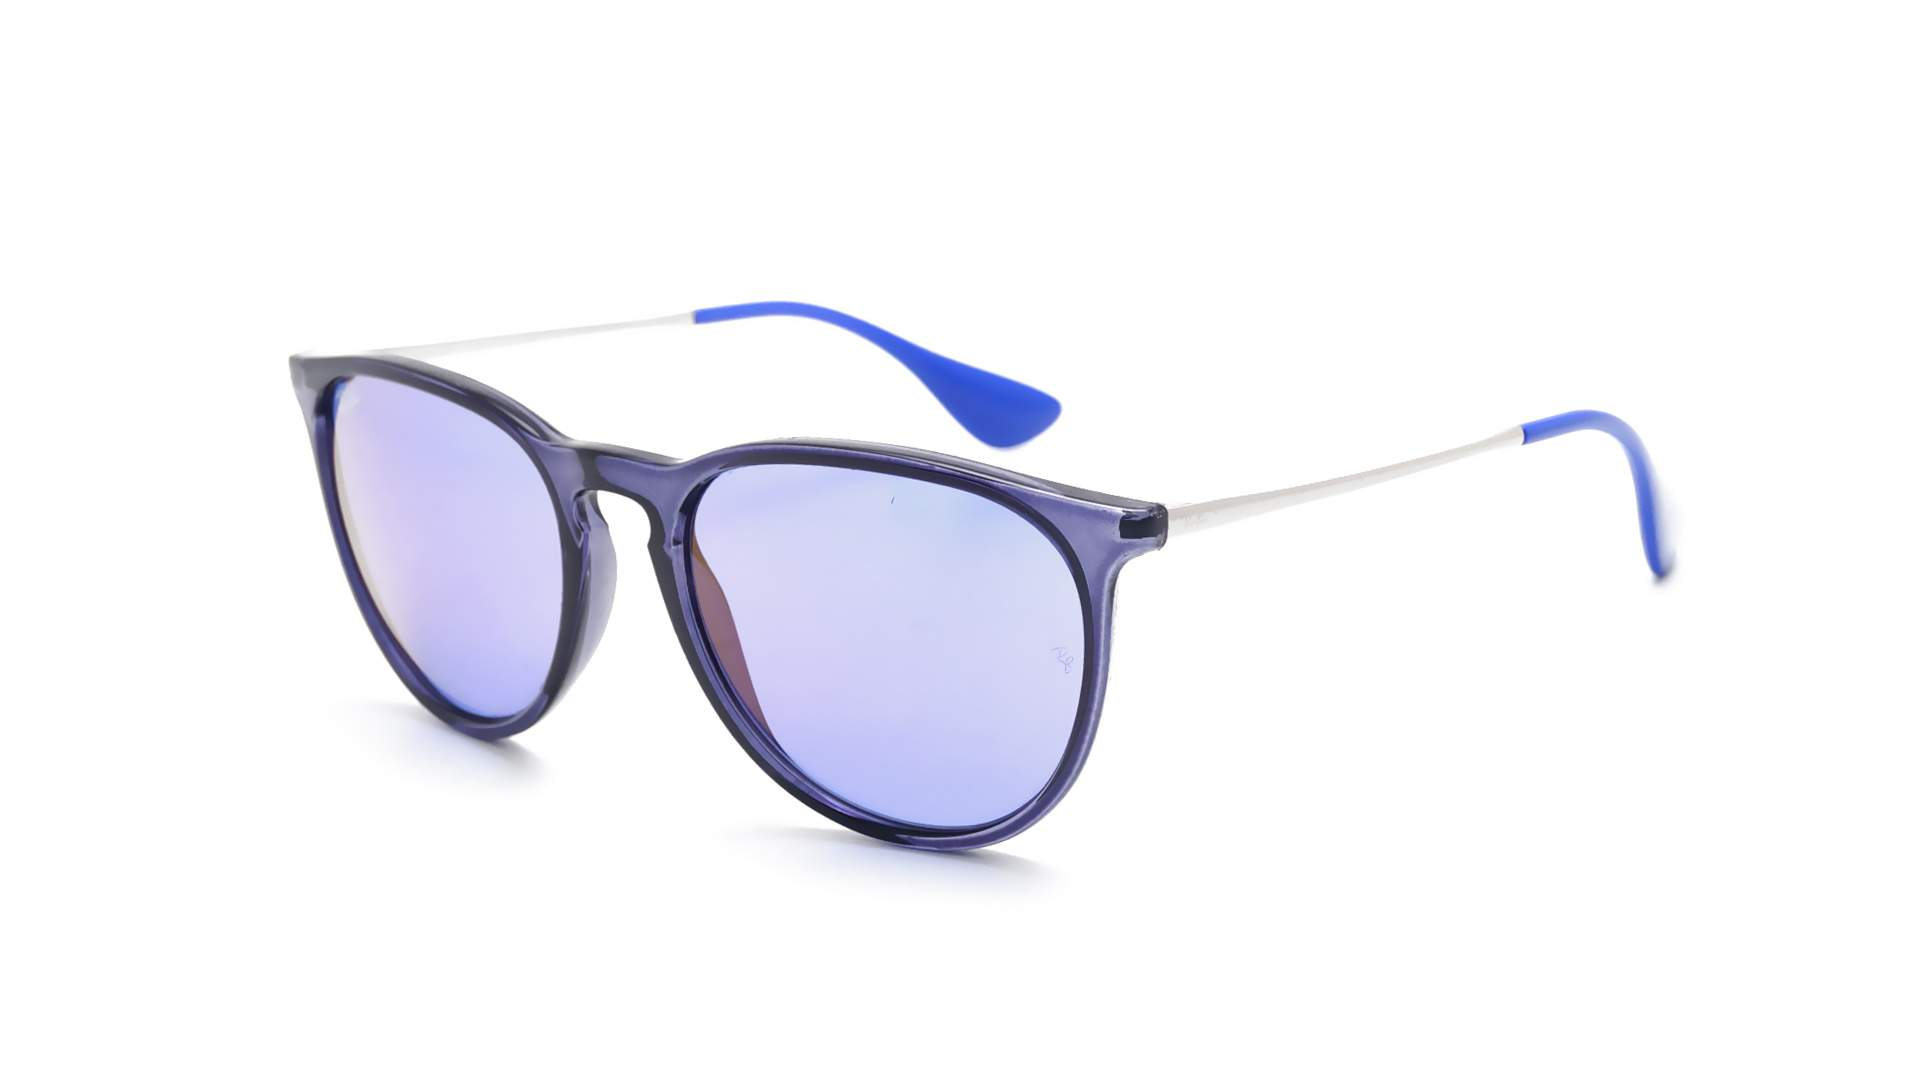 fa3e341c4 Sunglasses Ray-Ban Erika Color mix Blue RB4171 6338/D1 54-18 Medium